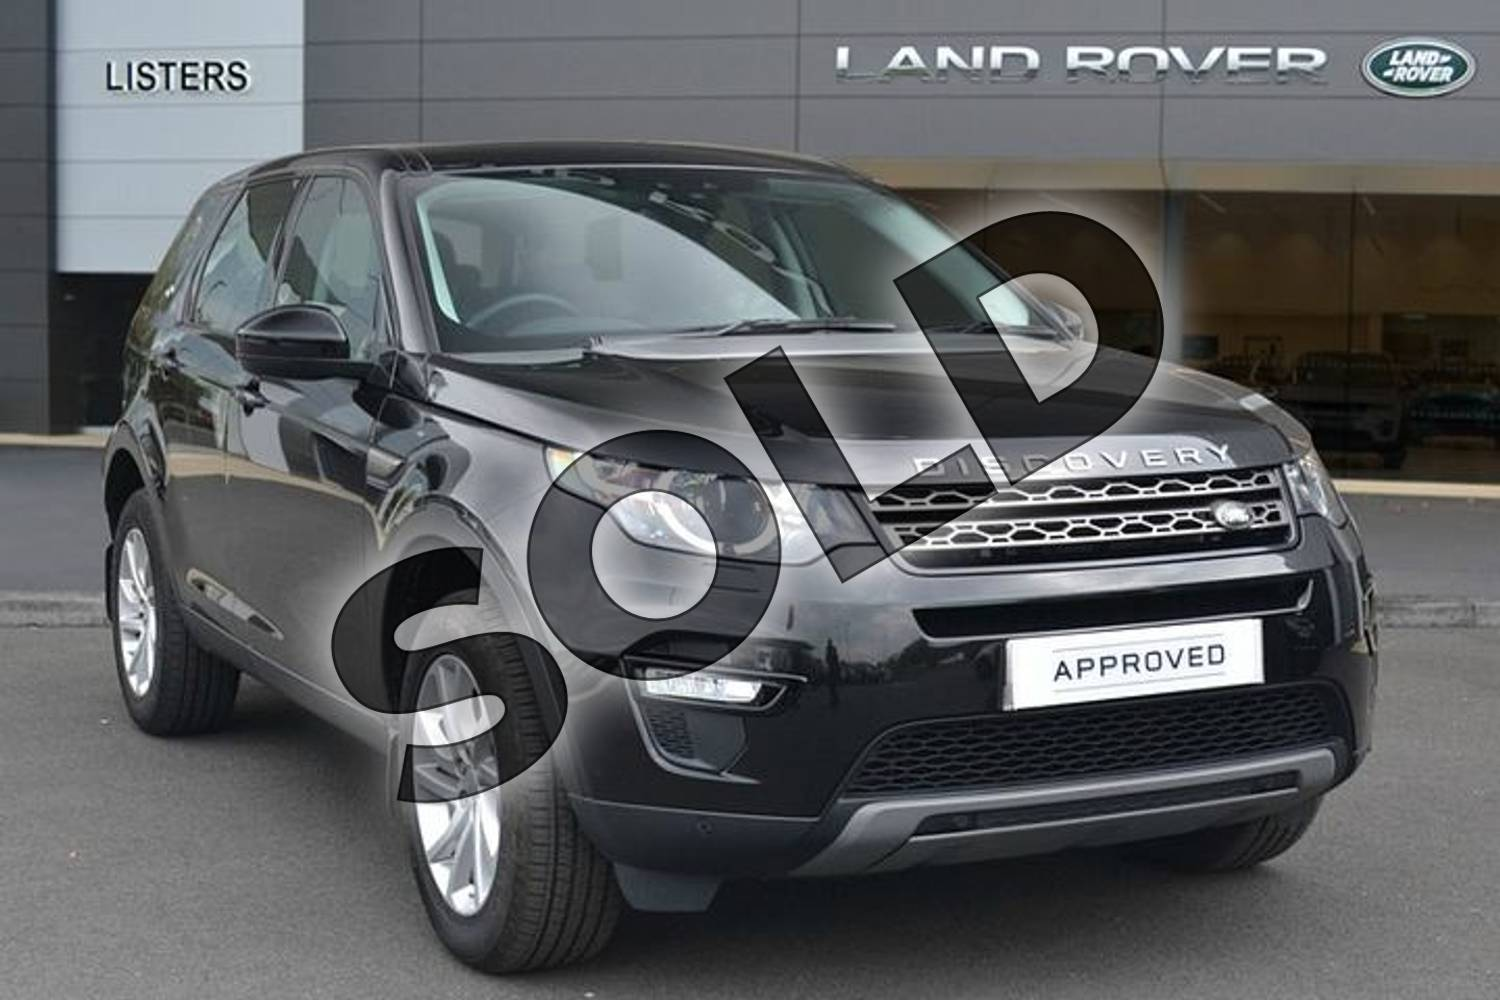 2018 Land Rover Discovery Sport Diesel SW Diesel SW 2.0 TD4 180 SE Tech 5dr Auto in Santorini Black at Listers Land Rover Hereford